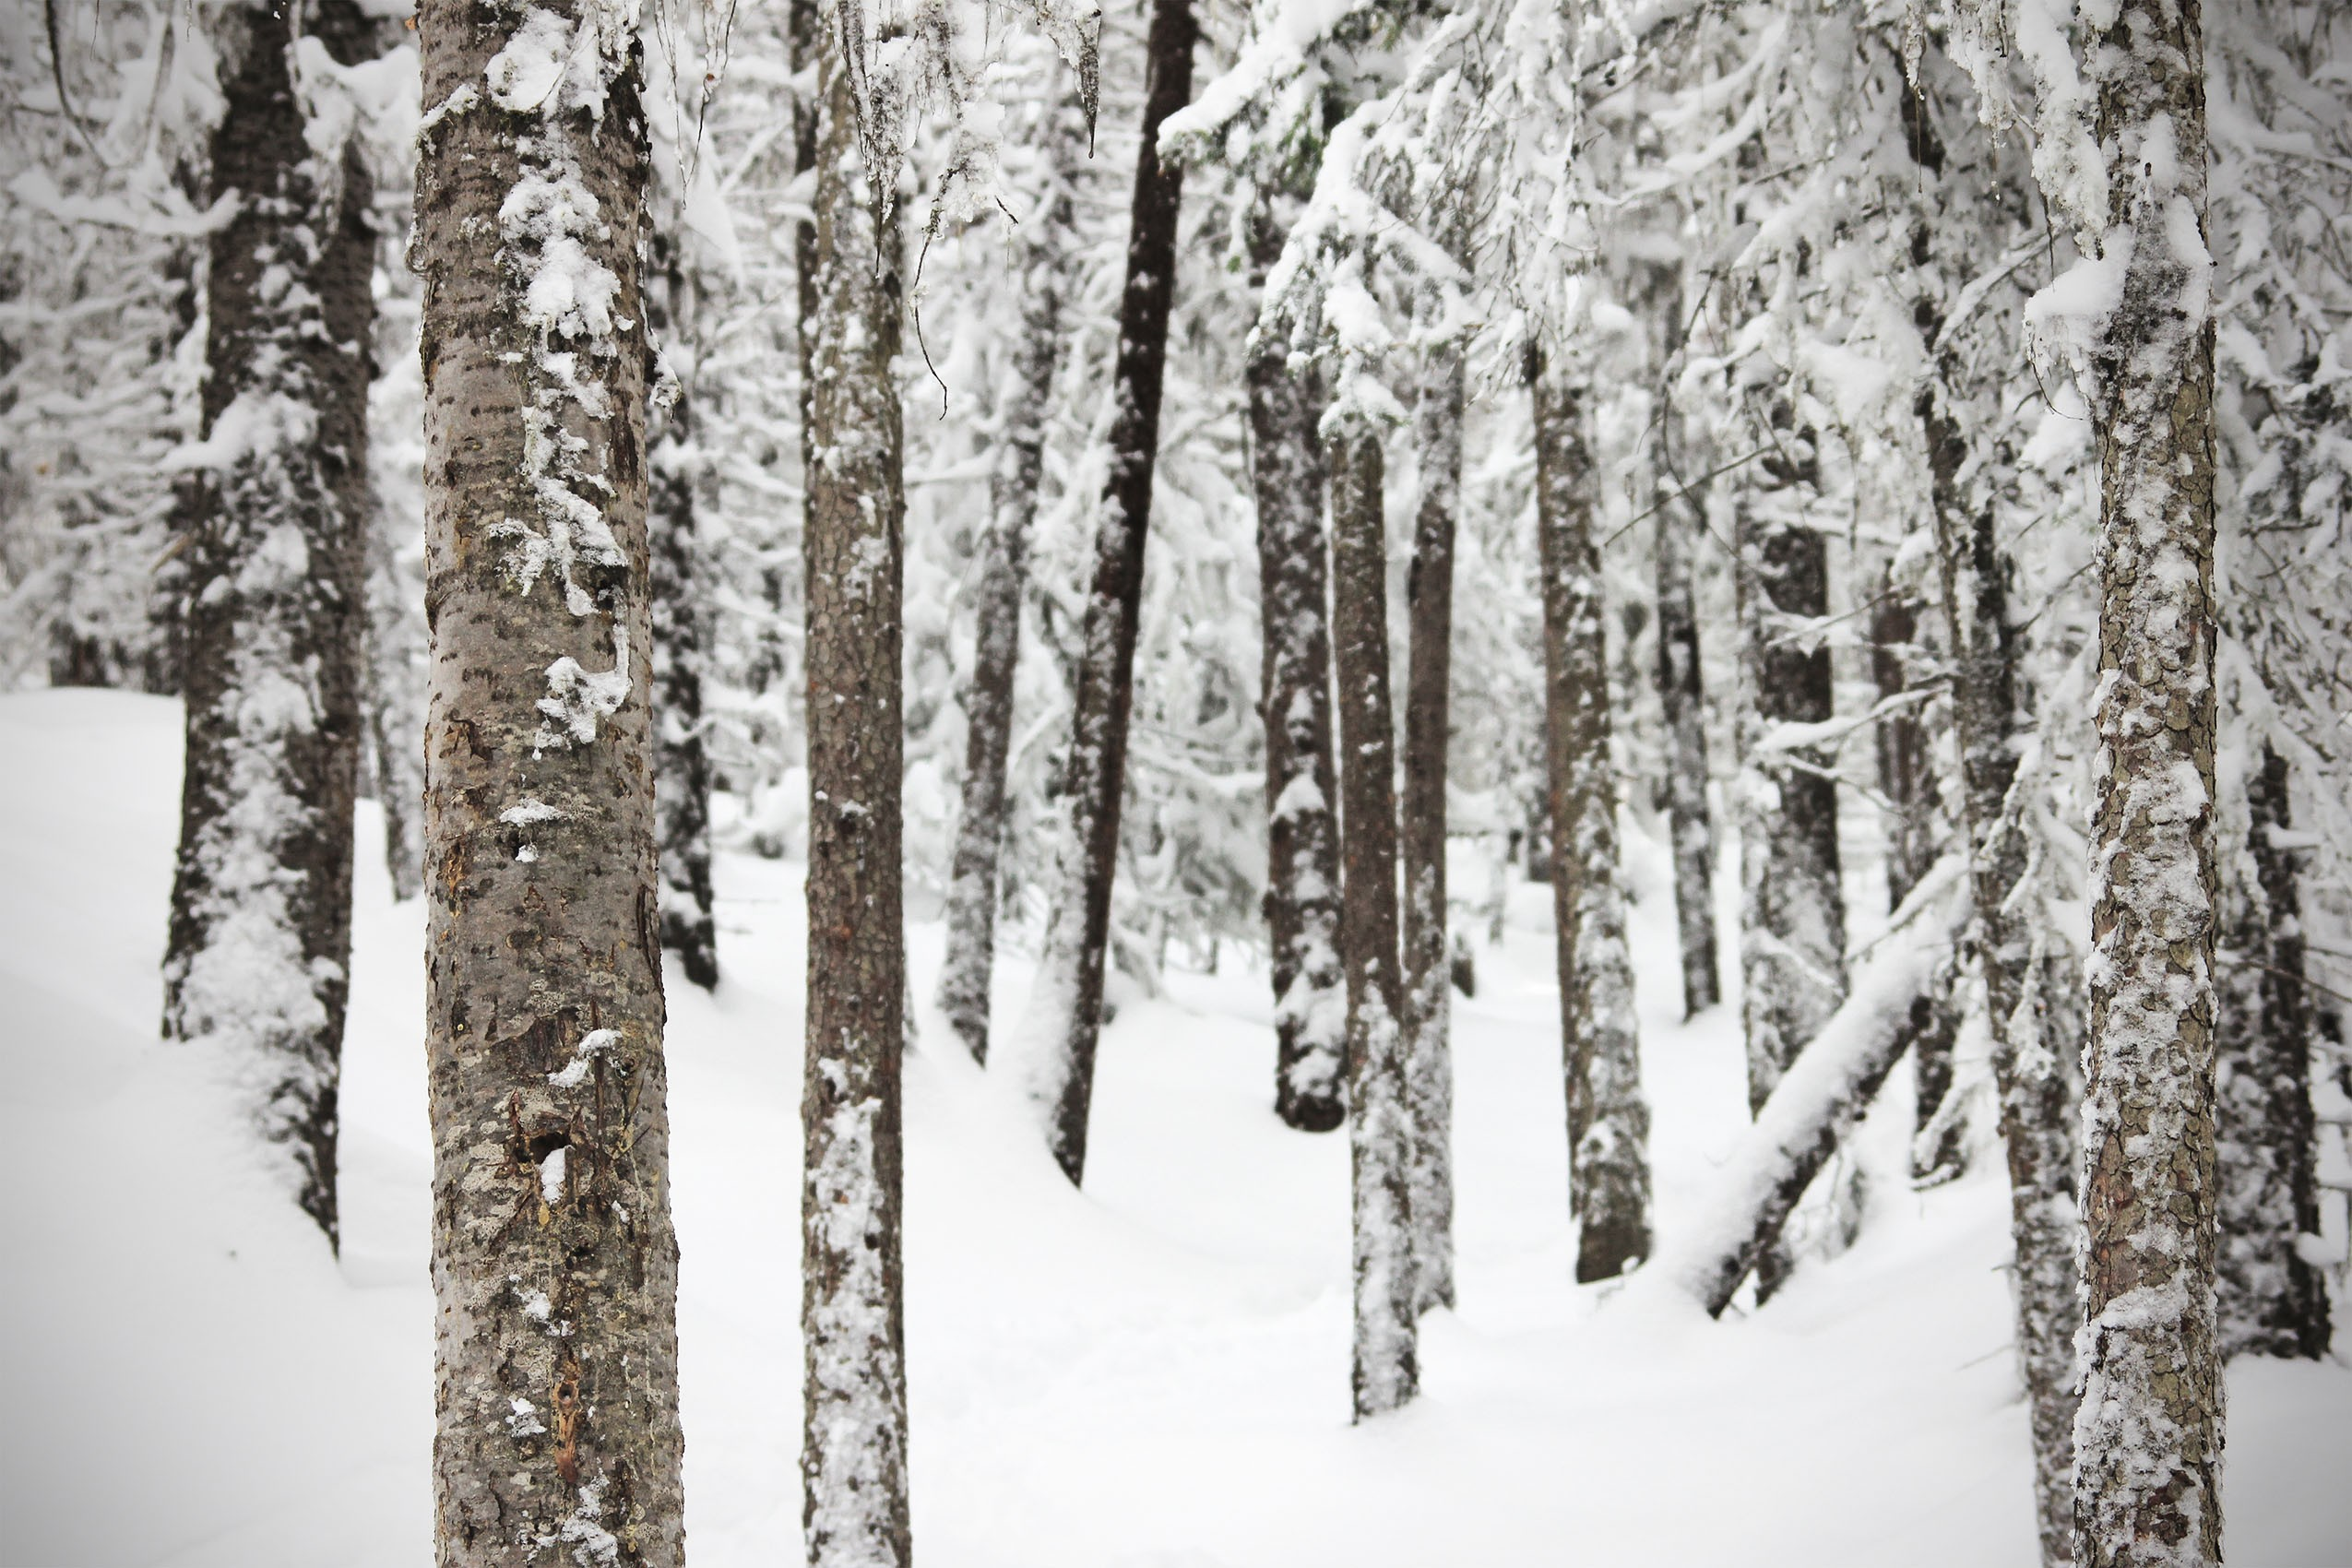 Snowy Forest 1